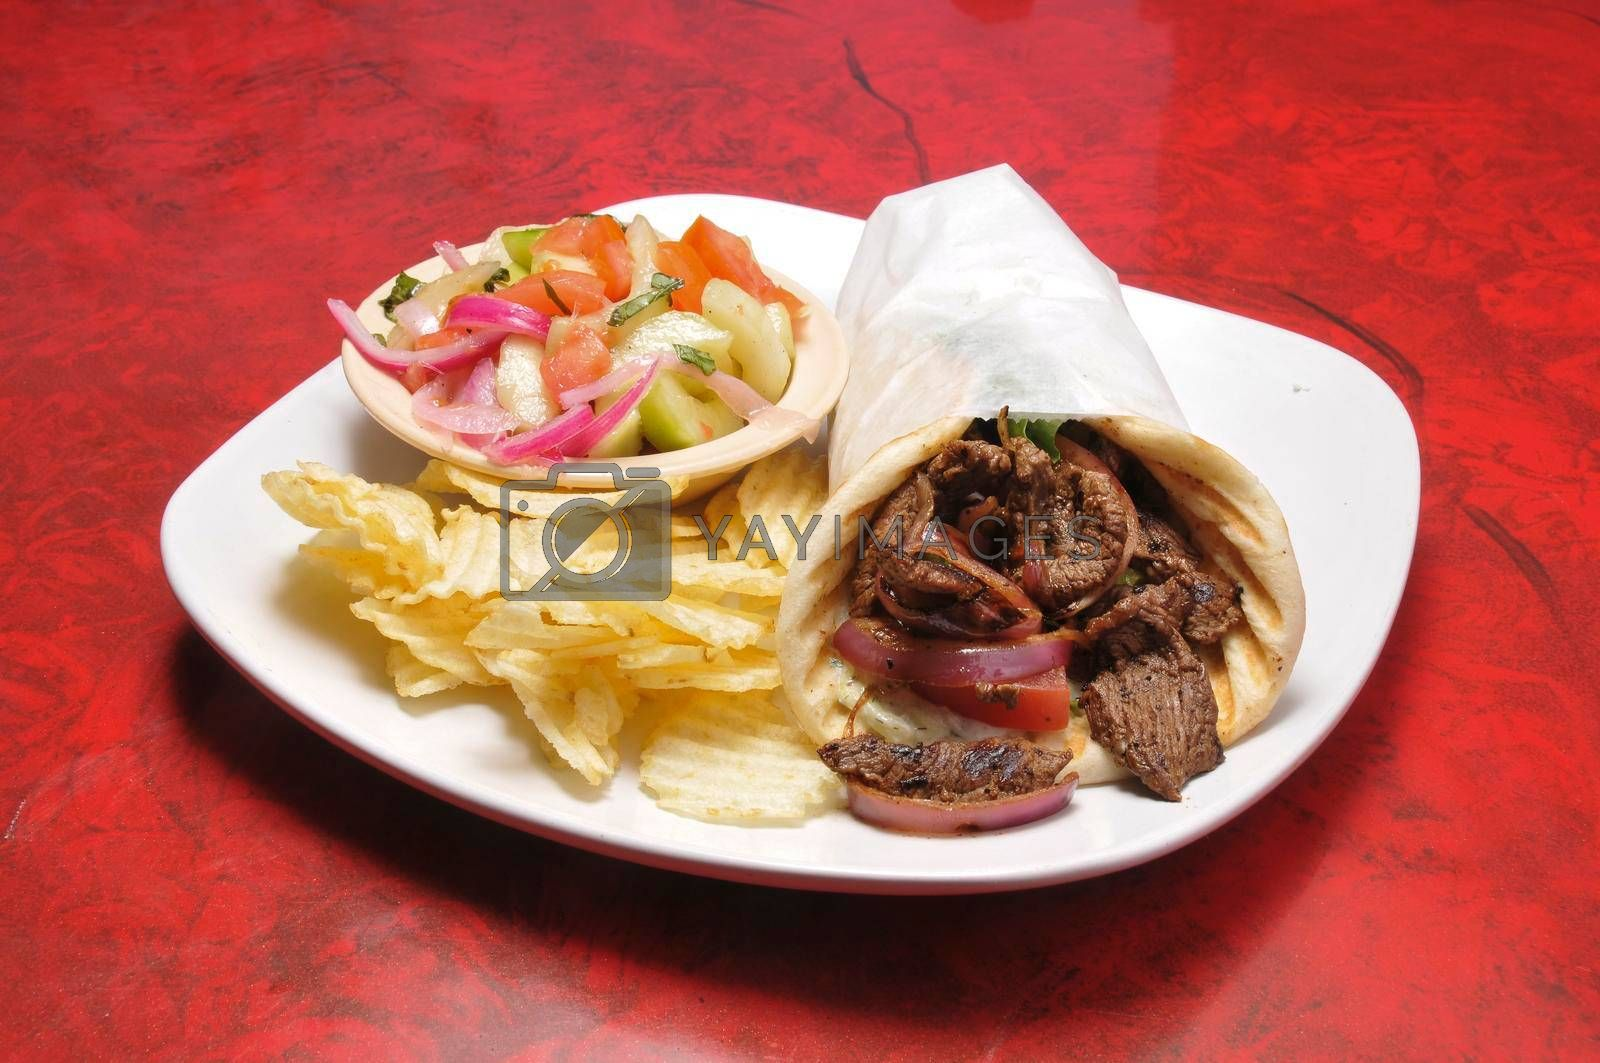 Delicious Greek dish known as a lamb gyro